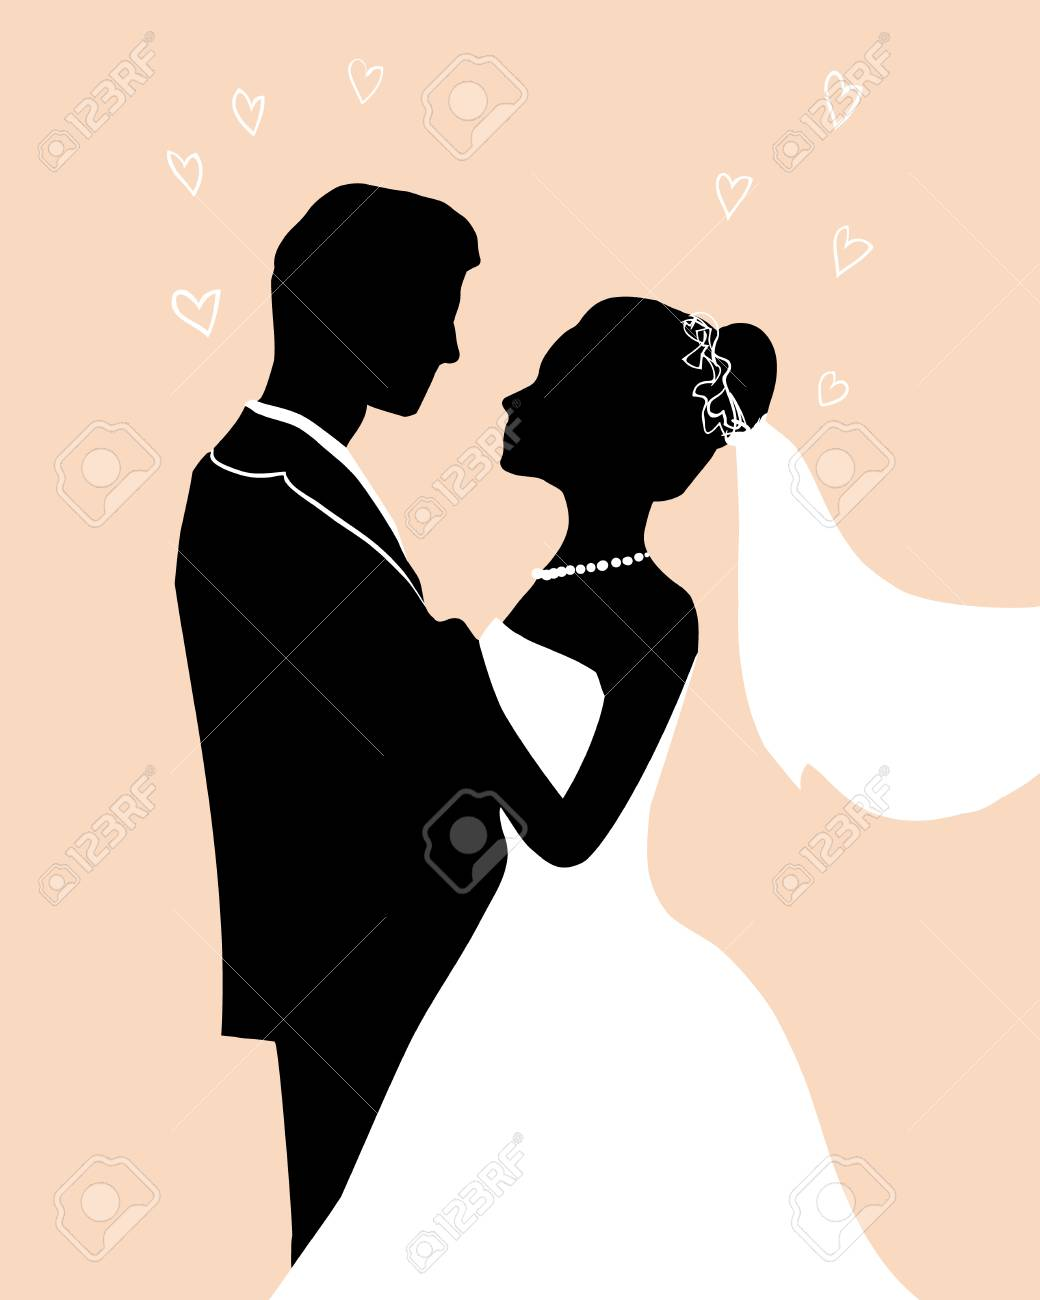 Flat ink Silhouette Bride and groom - wedding vector invitation greeting card in elegant romantic decorative style. A loving couple hugs - passion love of young people. - 101294715